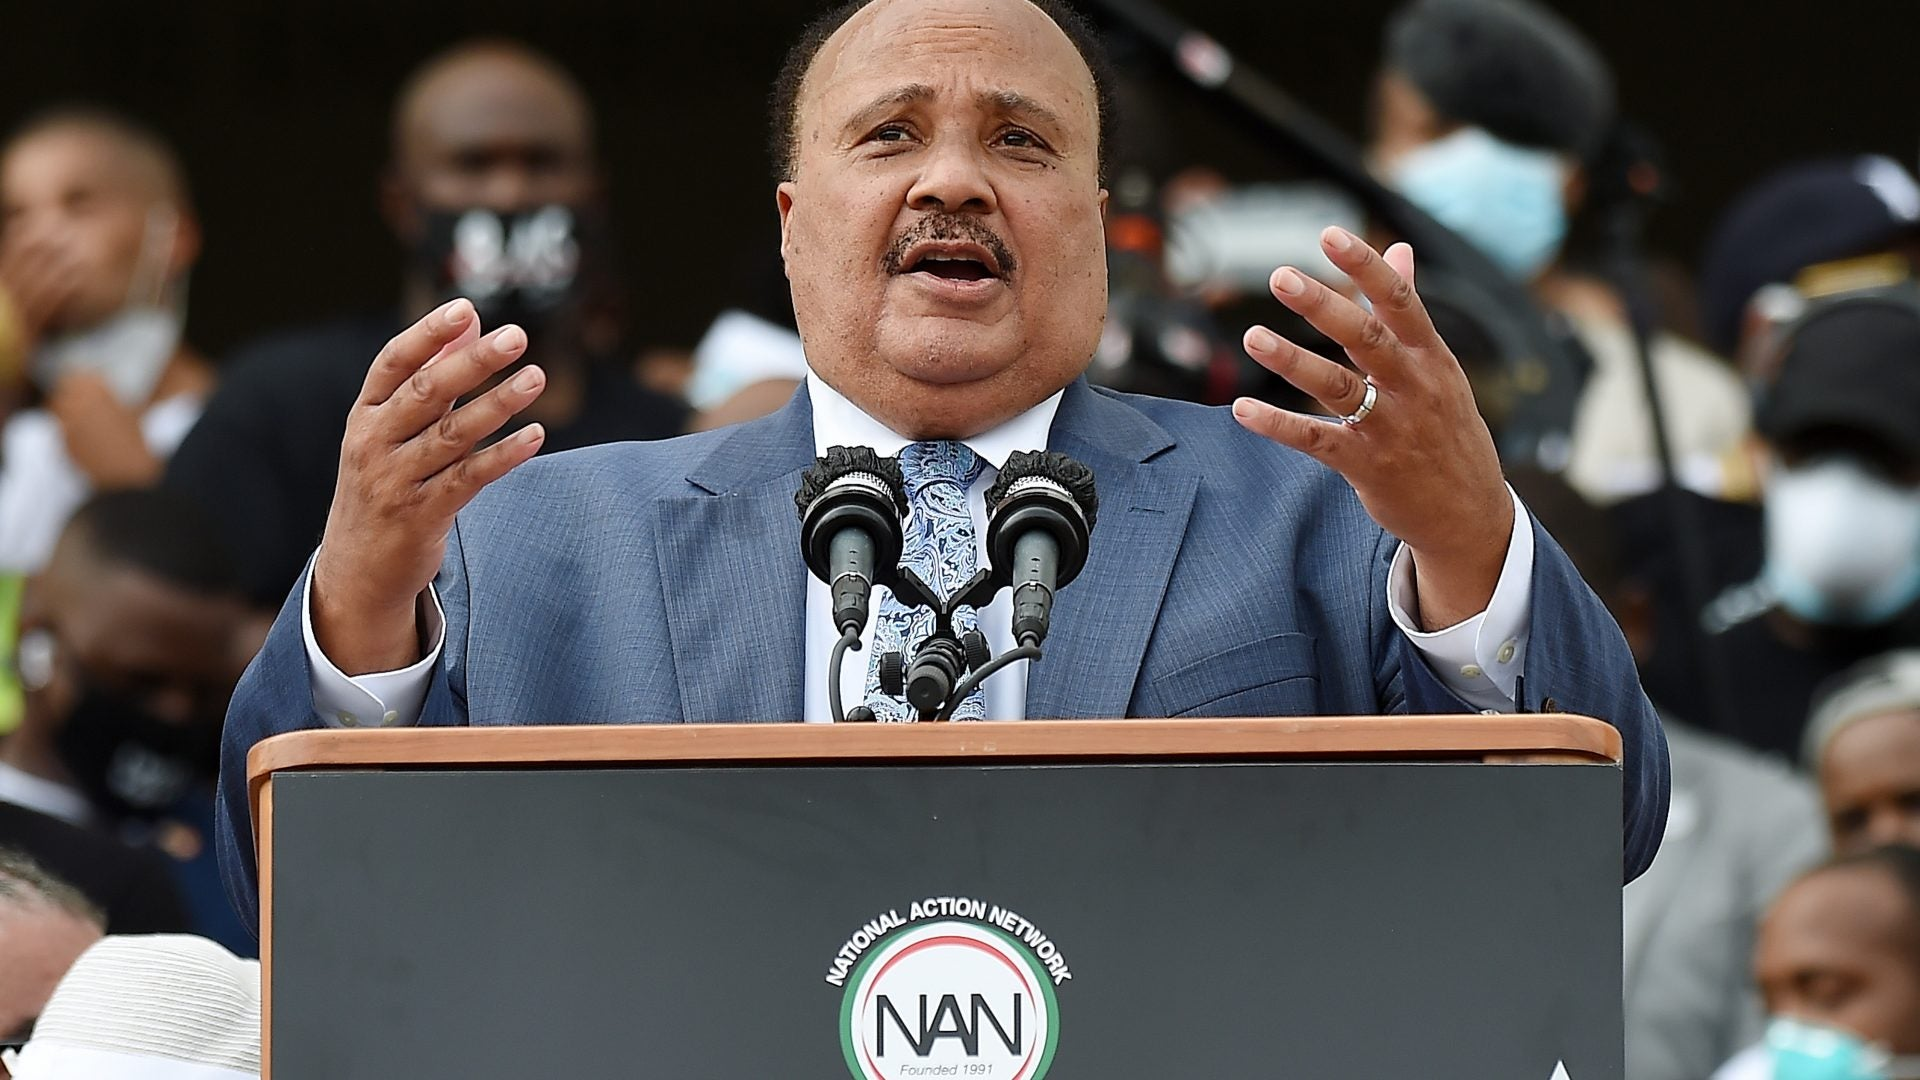 MLK III Passionately Addresses March On Washington Crowd